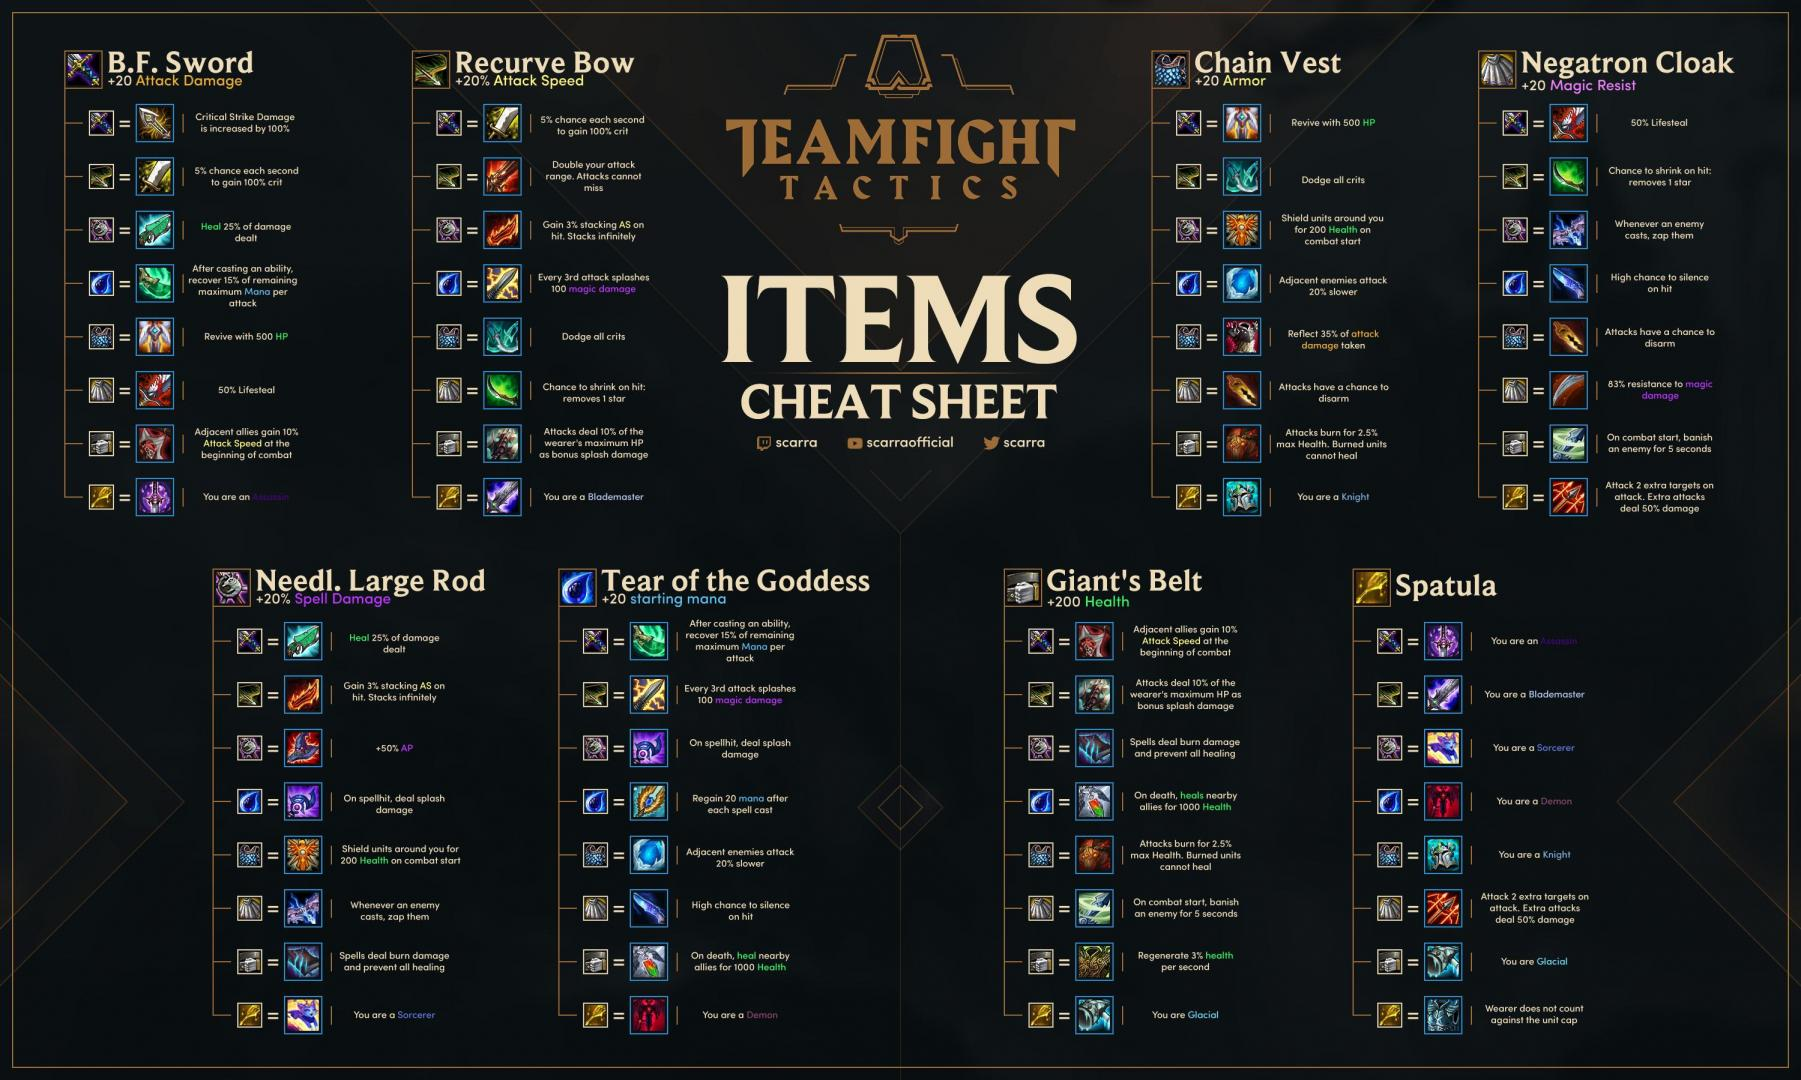 Teamfight Tactics Items Cheat Sheet